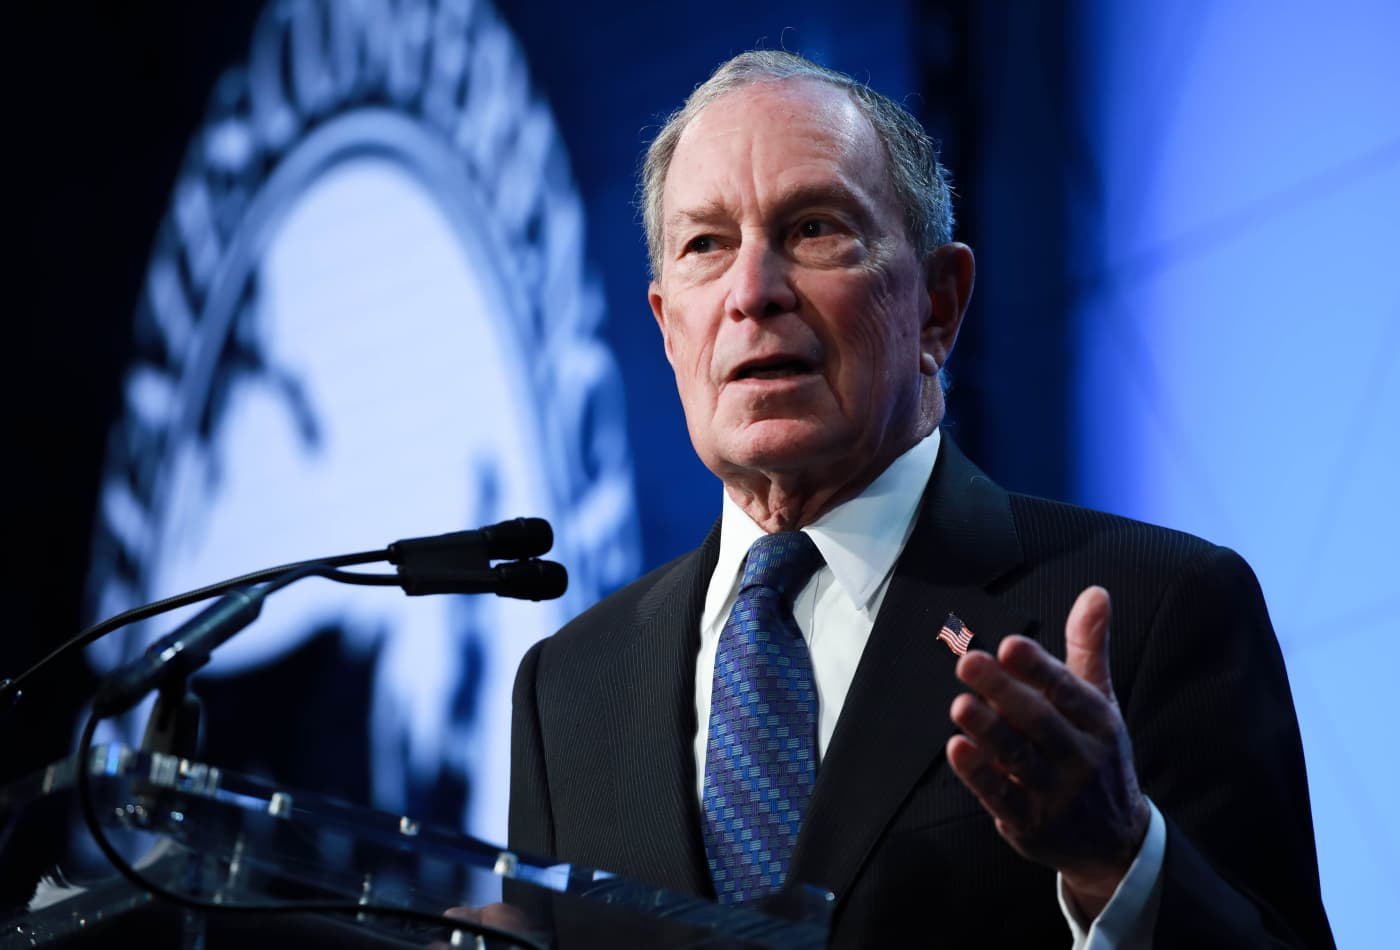 Bloomberg's proposed Wall Street taxes put 'sand in gears of the financial markets': Policy analyst